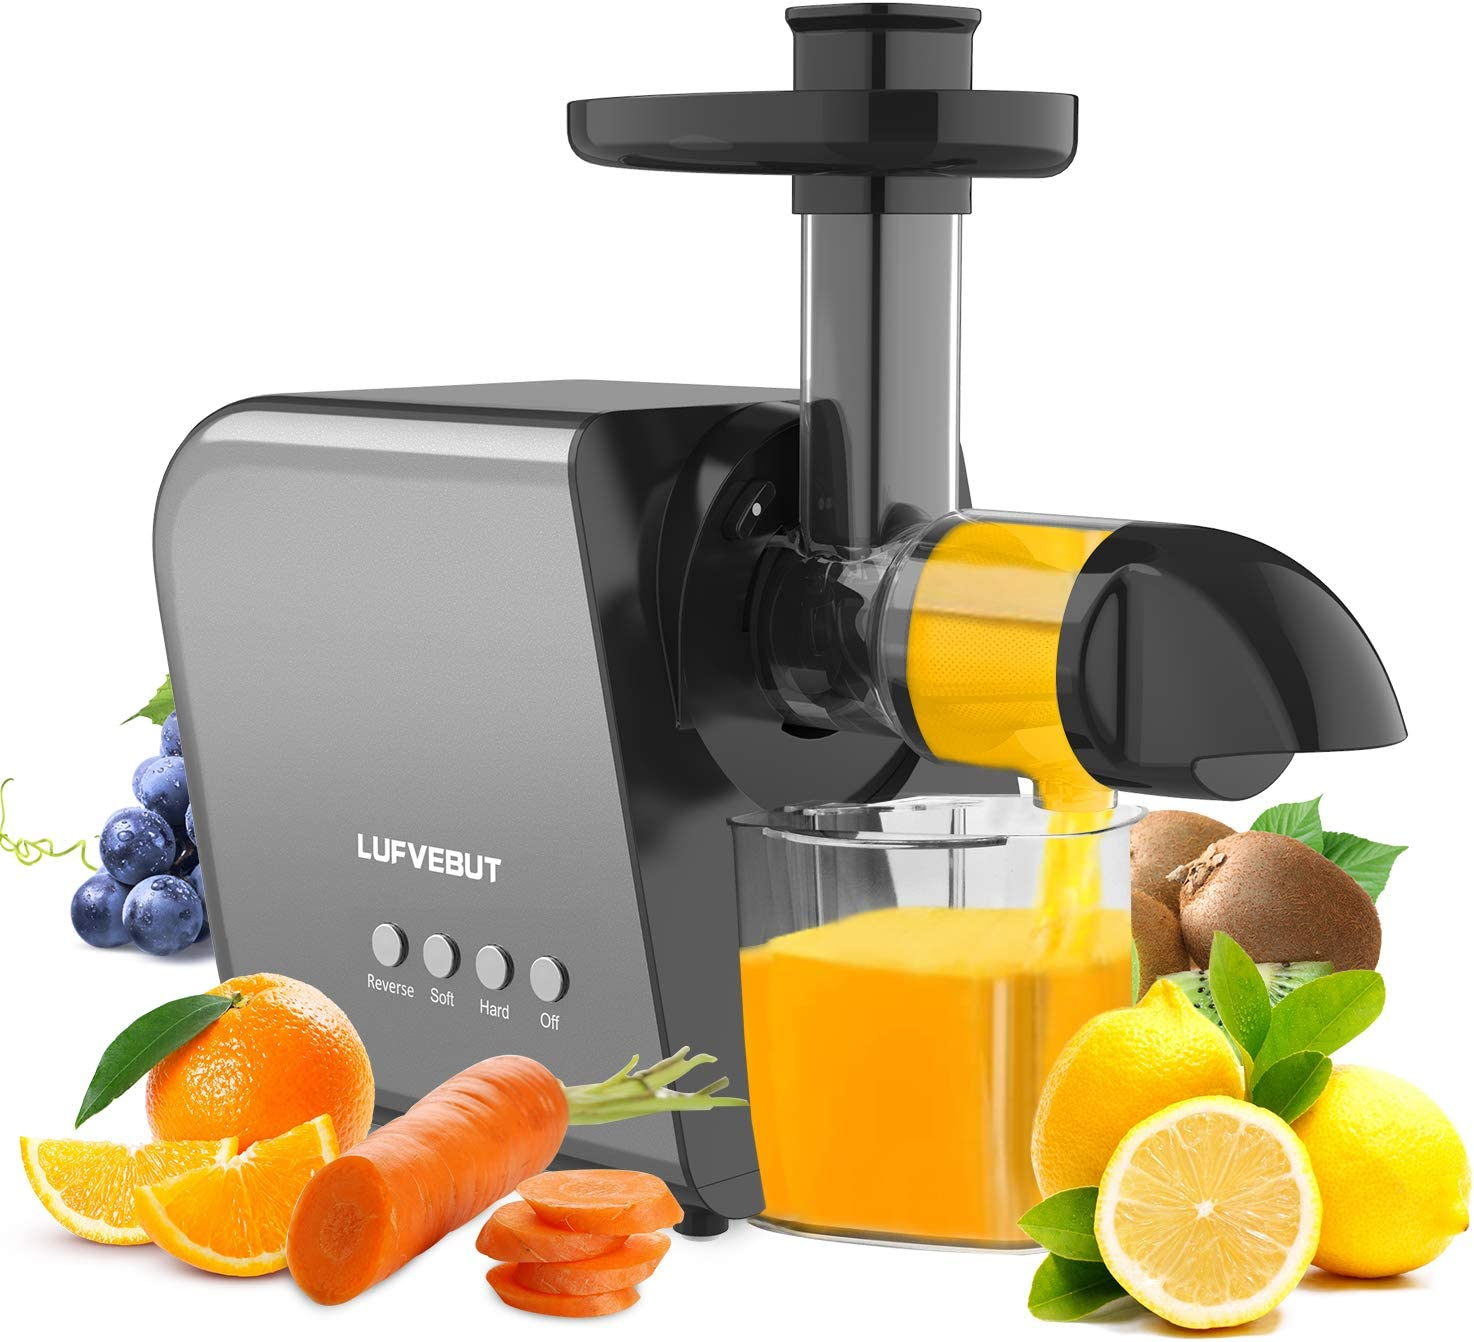 Slow Masticating Juicer Machine for Vegetable&Fruit, Upgraded Filter Auger, Higher Juice Yield, Easy to Clean Slow Juicer Extractor, Reverse Function, Cleaning Brush and 6 Pack Silicone Stretch Lids